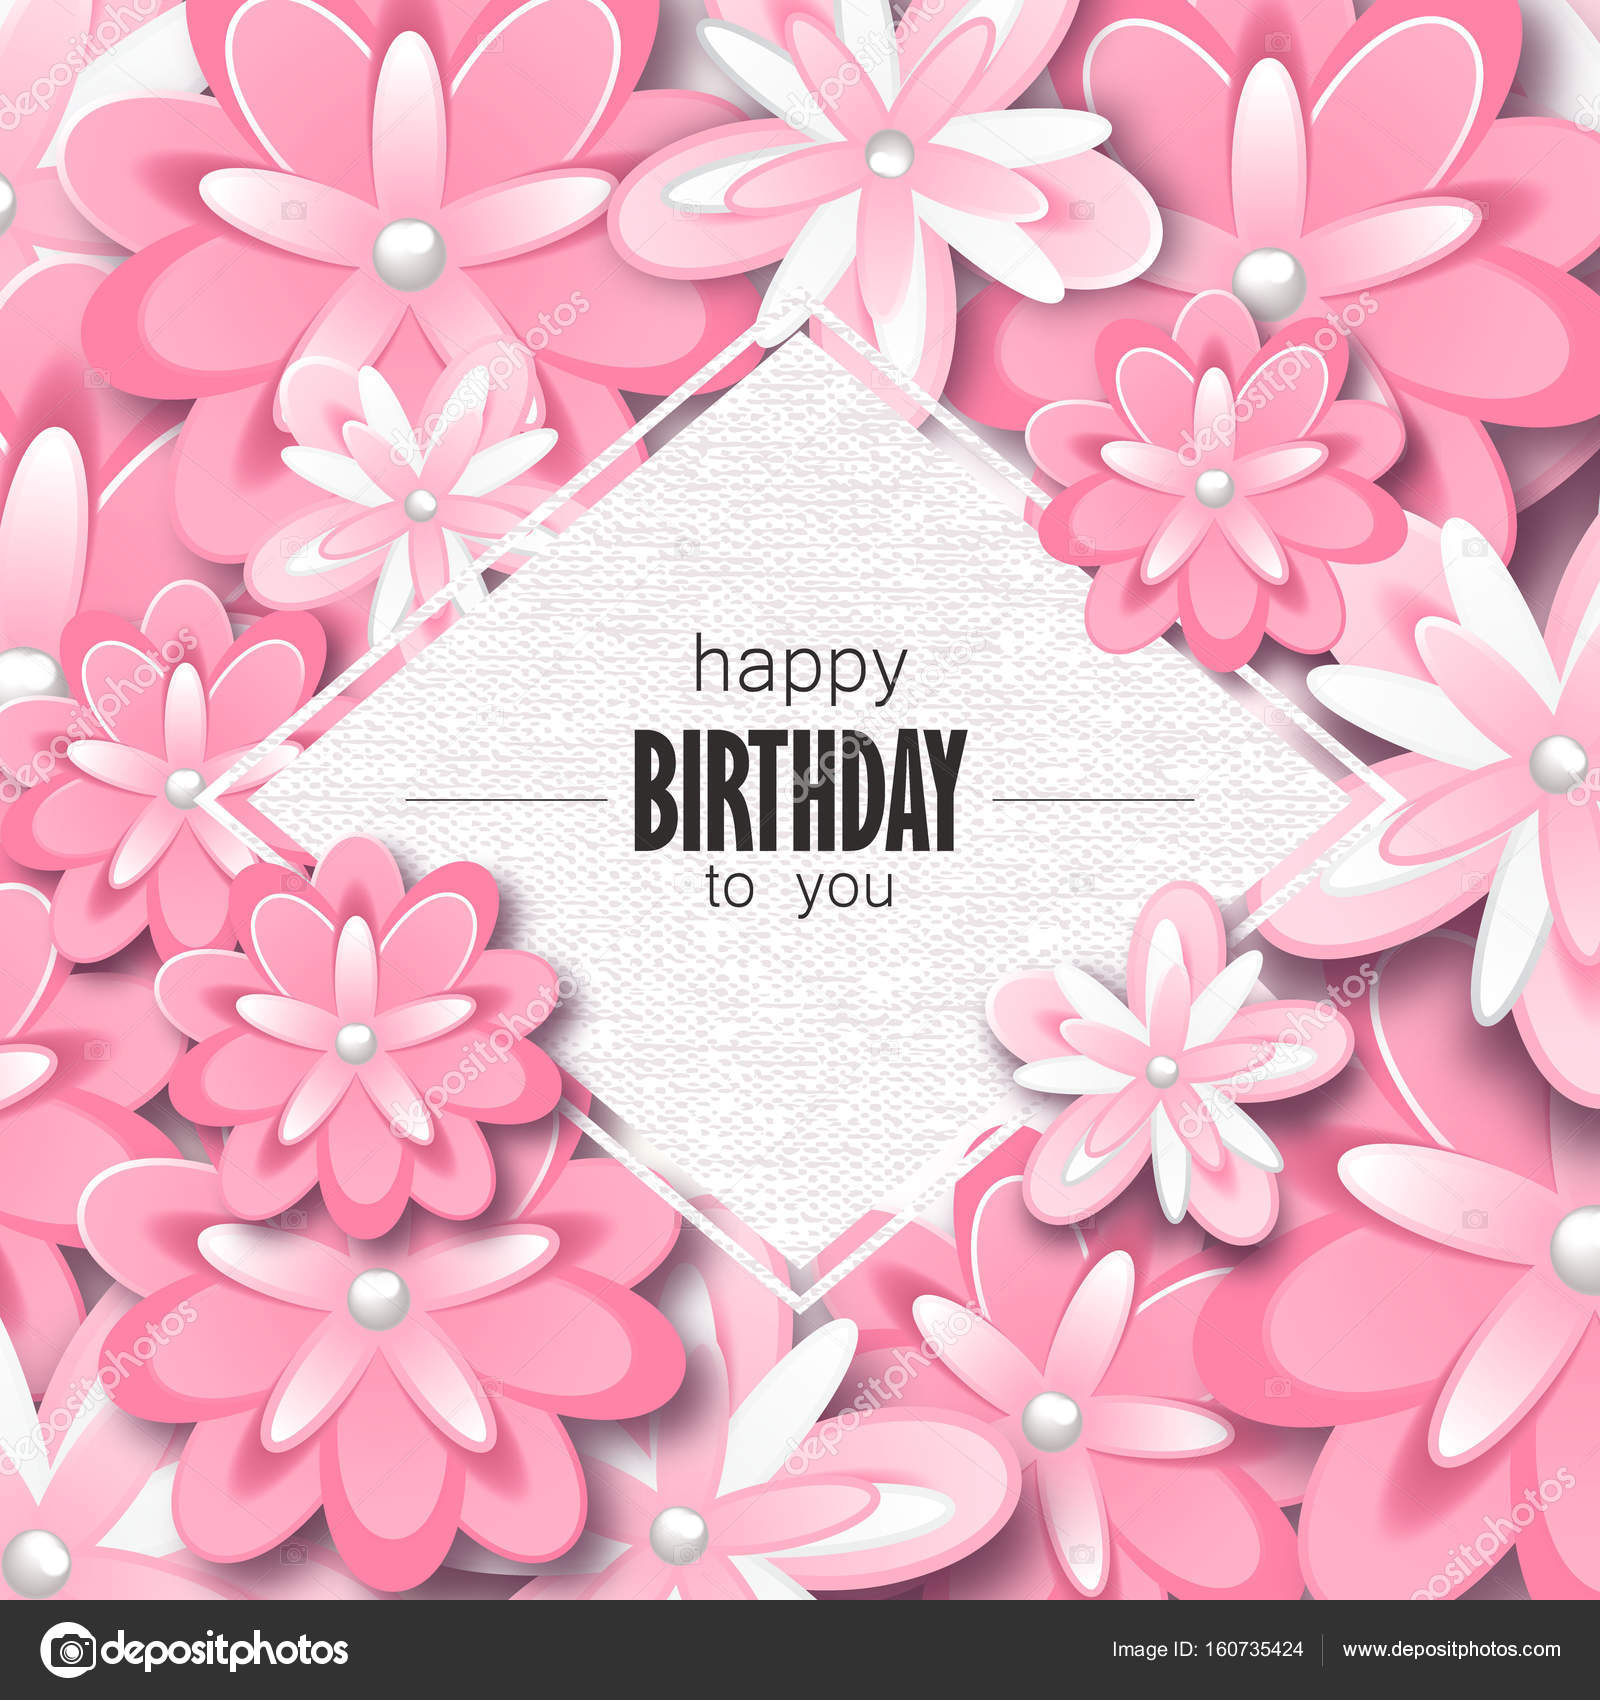 Happy Birthday Greeting Card And Party Invitation Template With